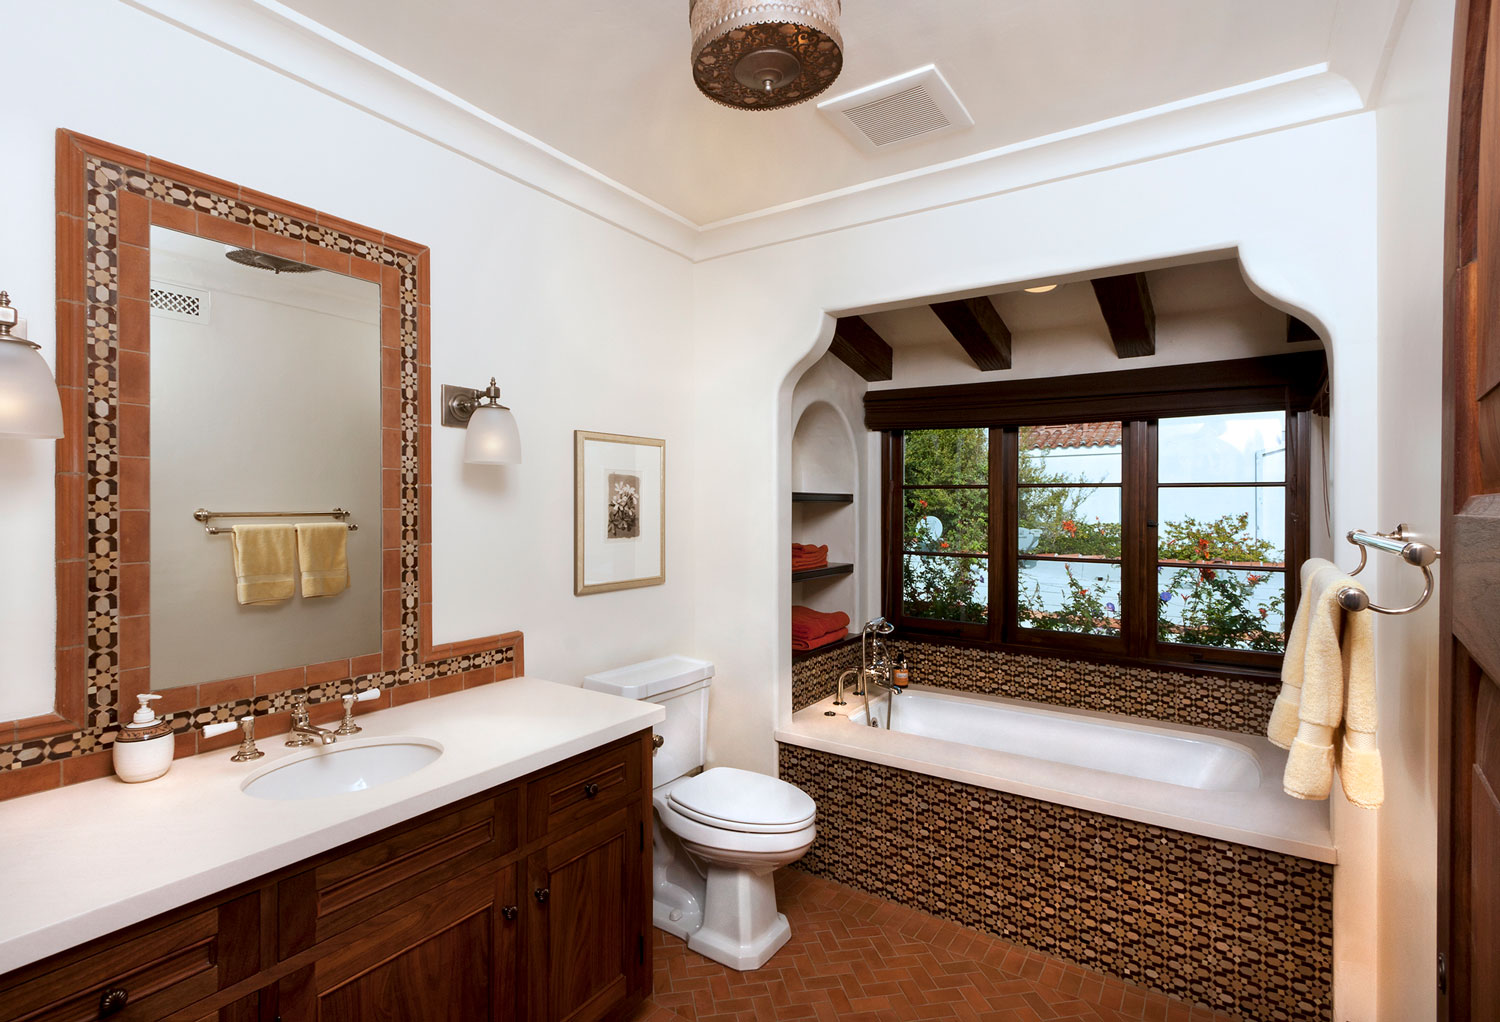 12-contemporary-spanish-bathroom-tile-tub-apron-gary-drake-general-contractor.jpg